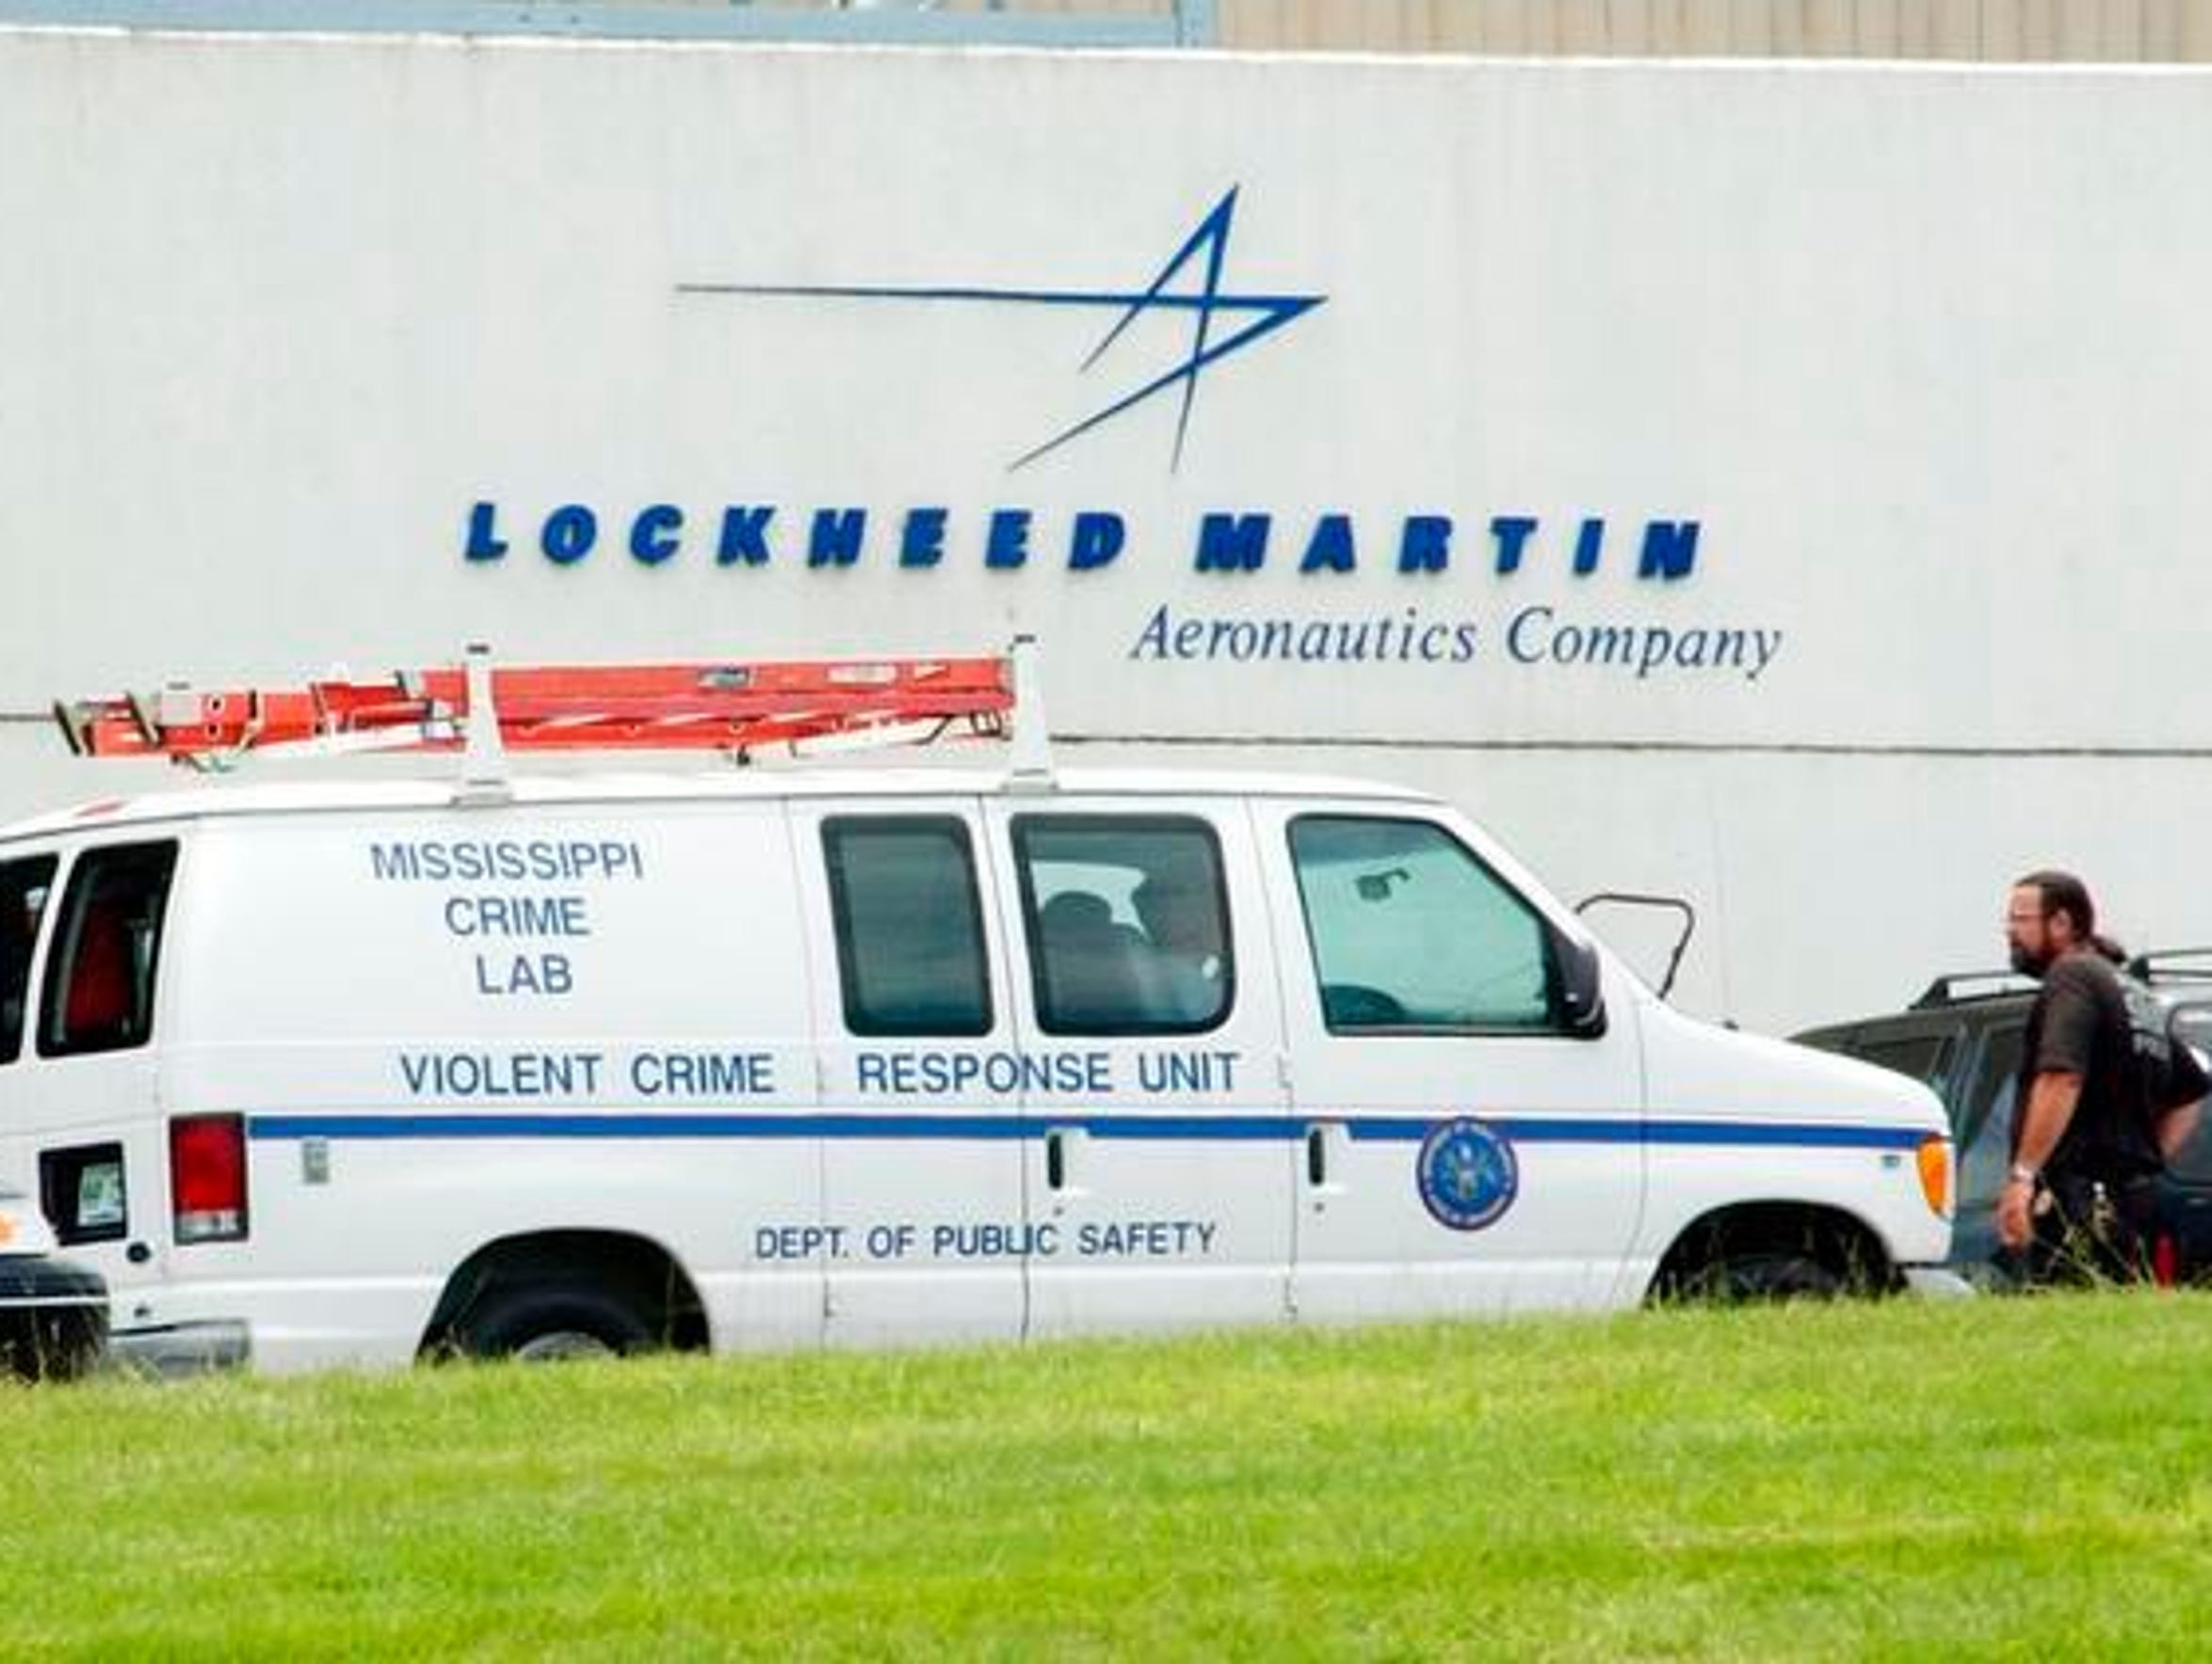 A Mississippi Crime Lab van drives up to the Lockheed-Martin